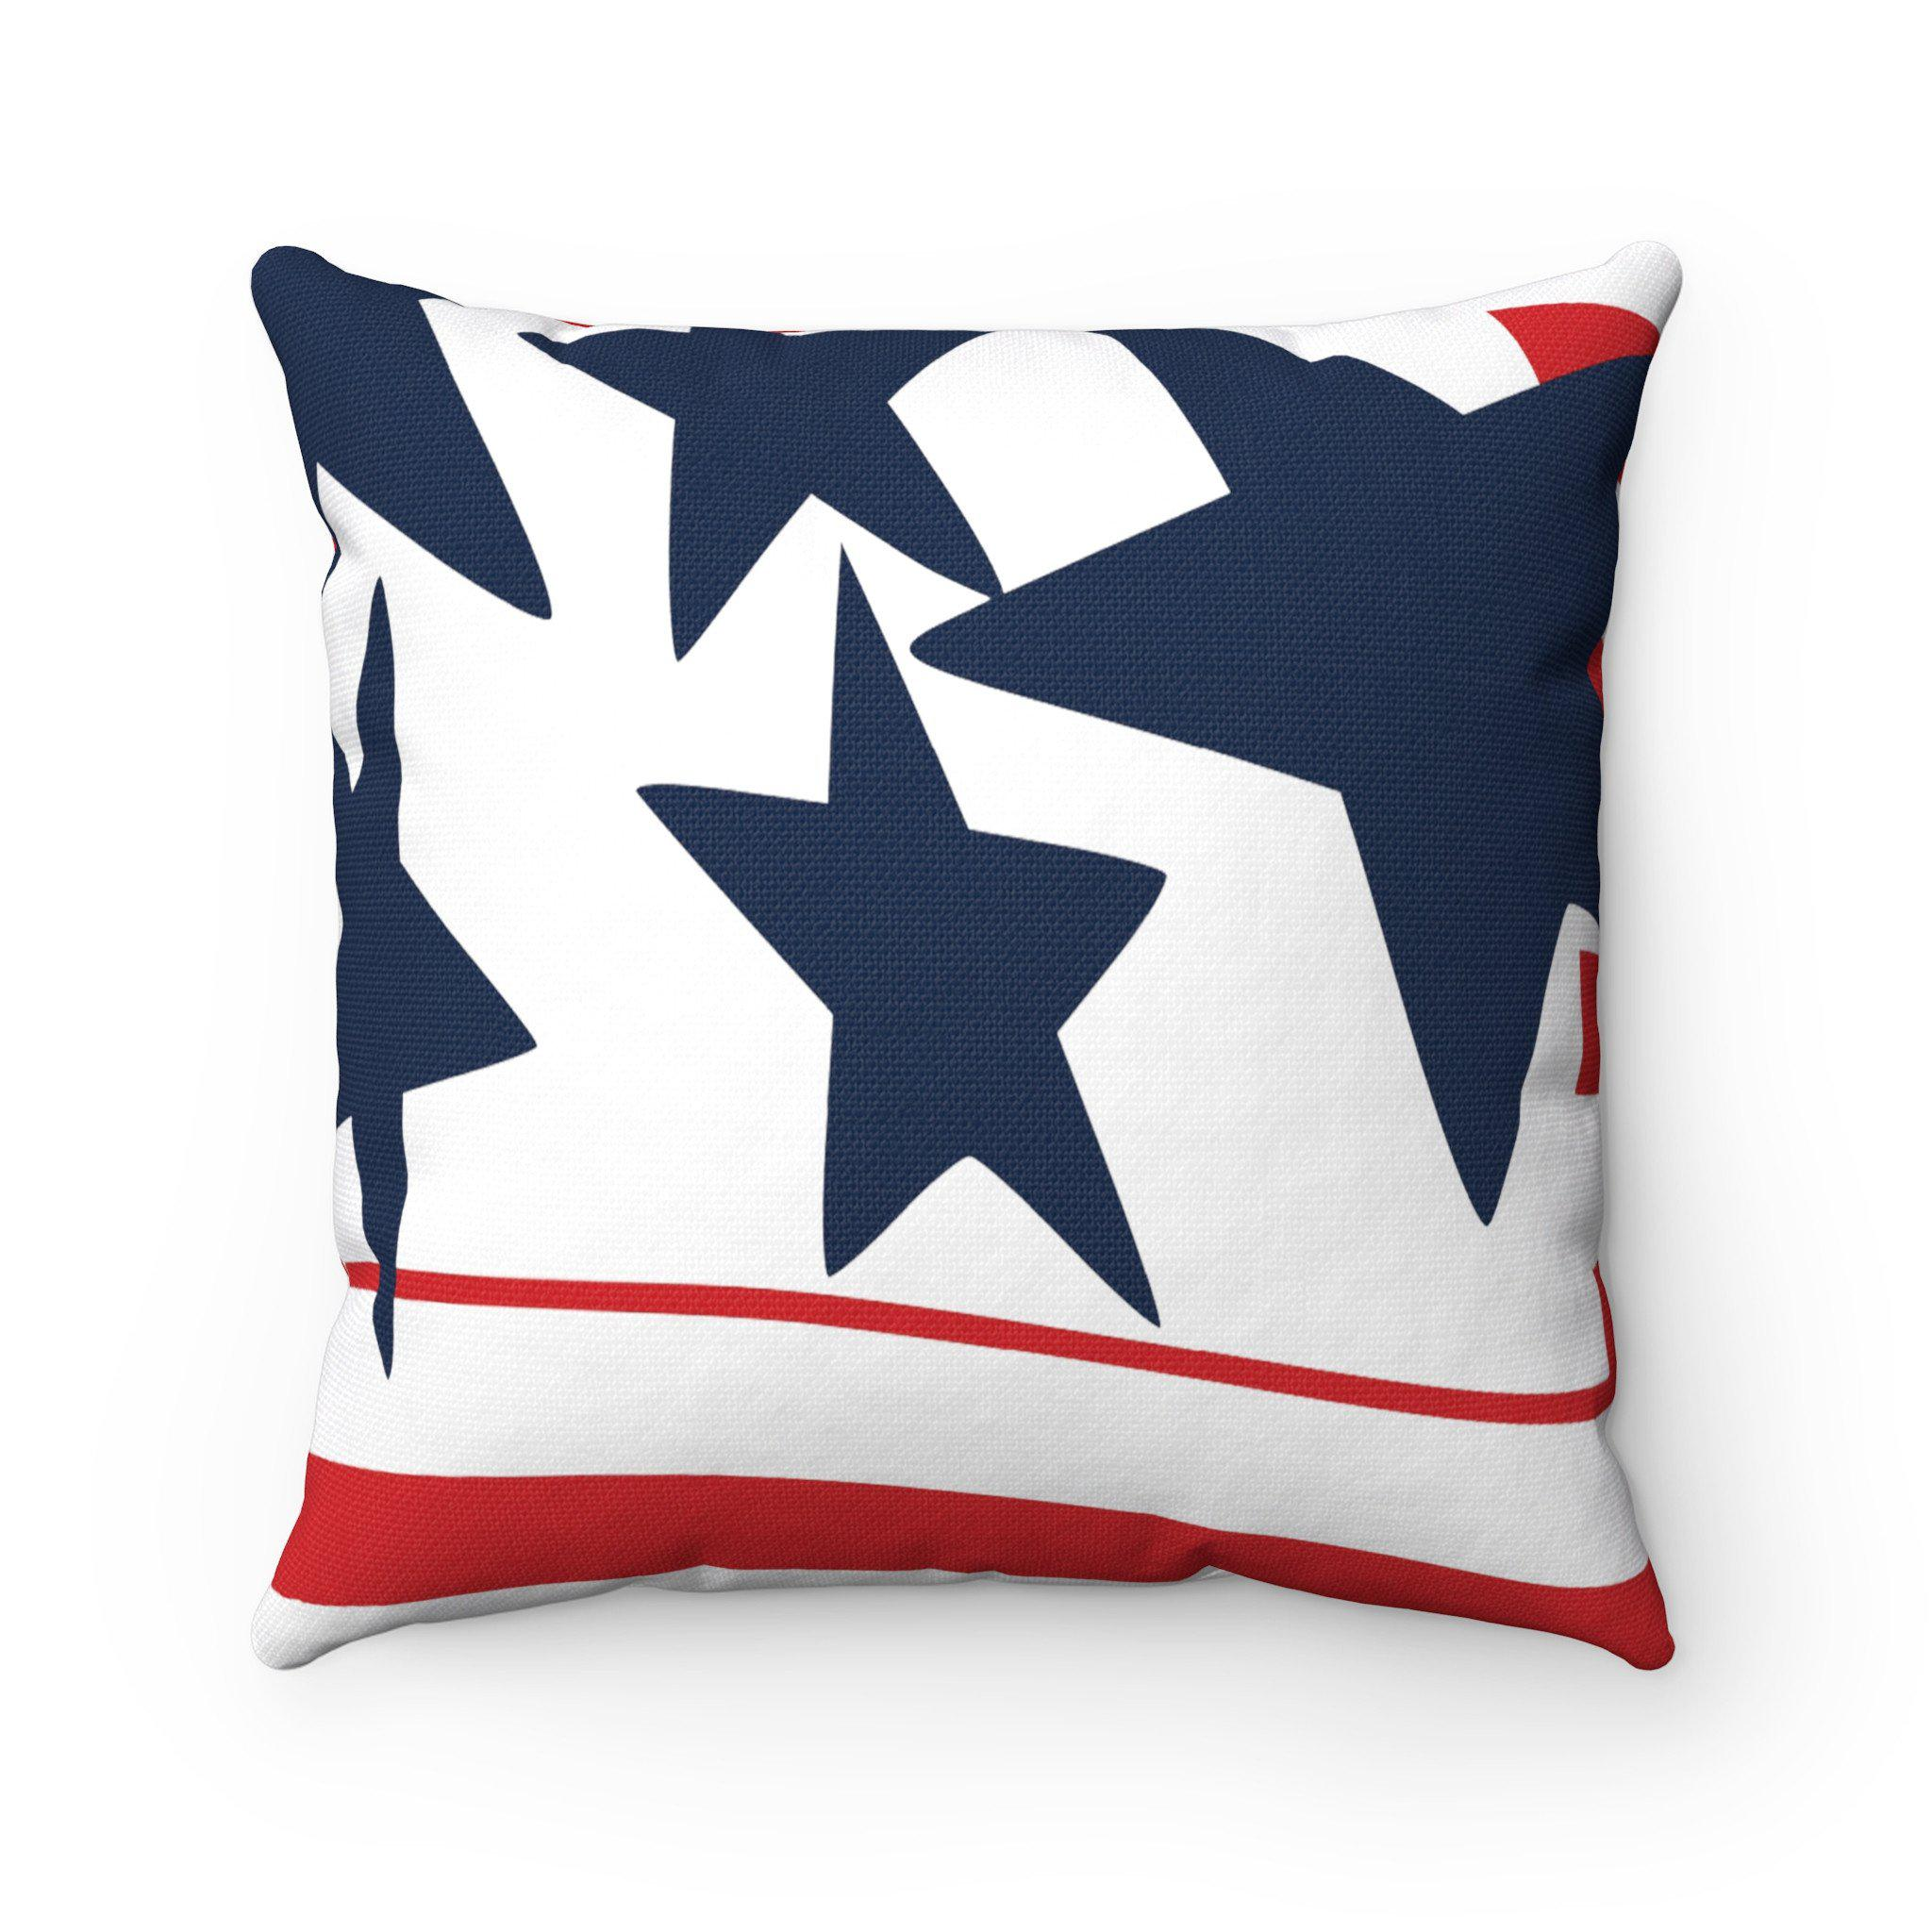 Creative Home Decor | Stars and stripes beautiful indoor pillow comes in various sizes.